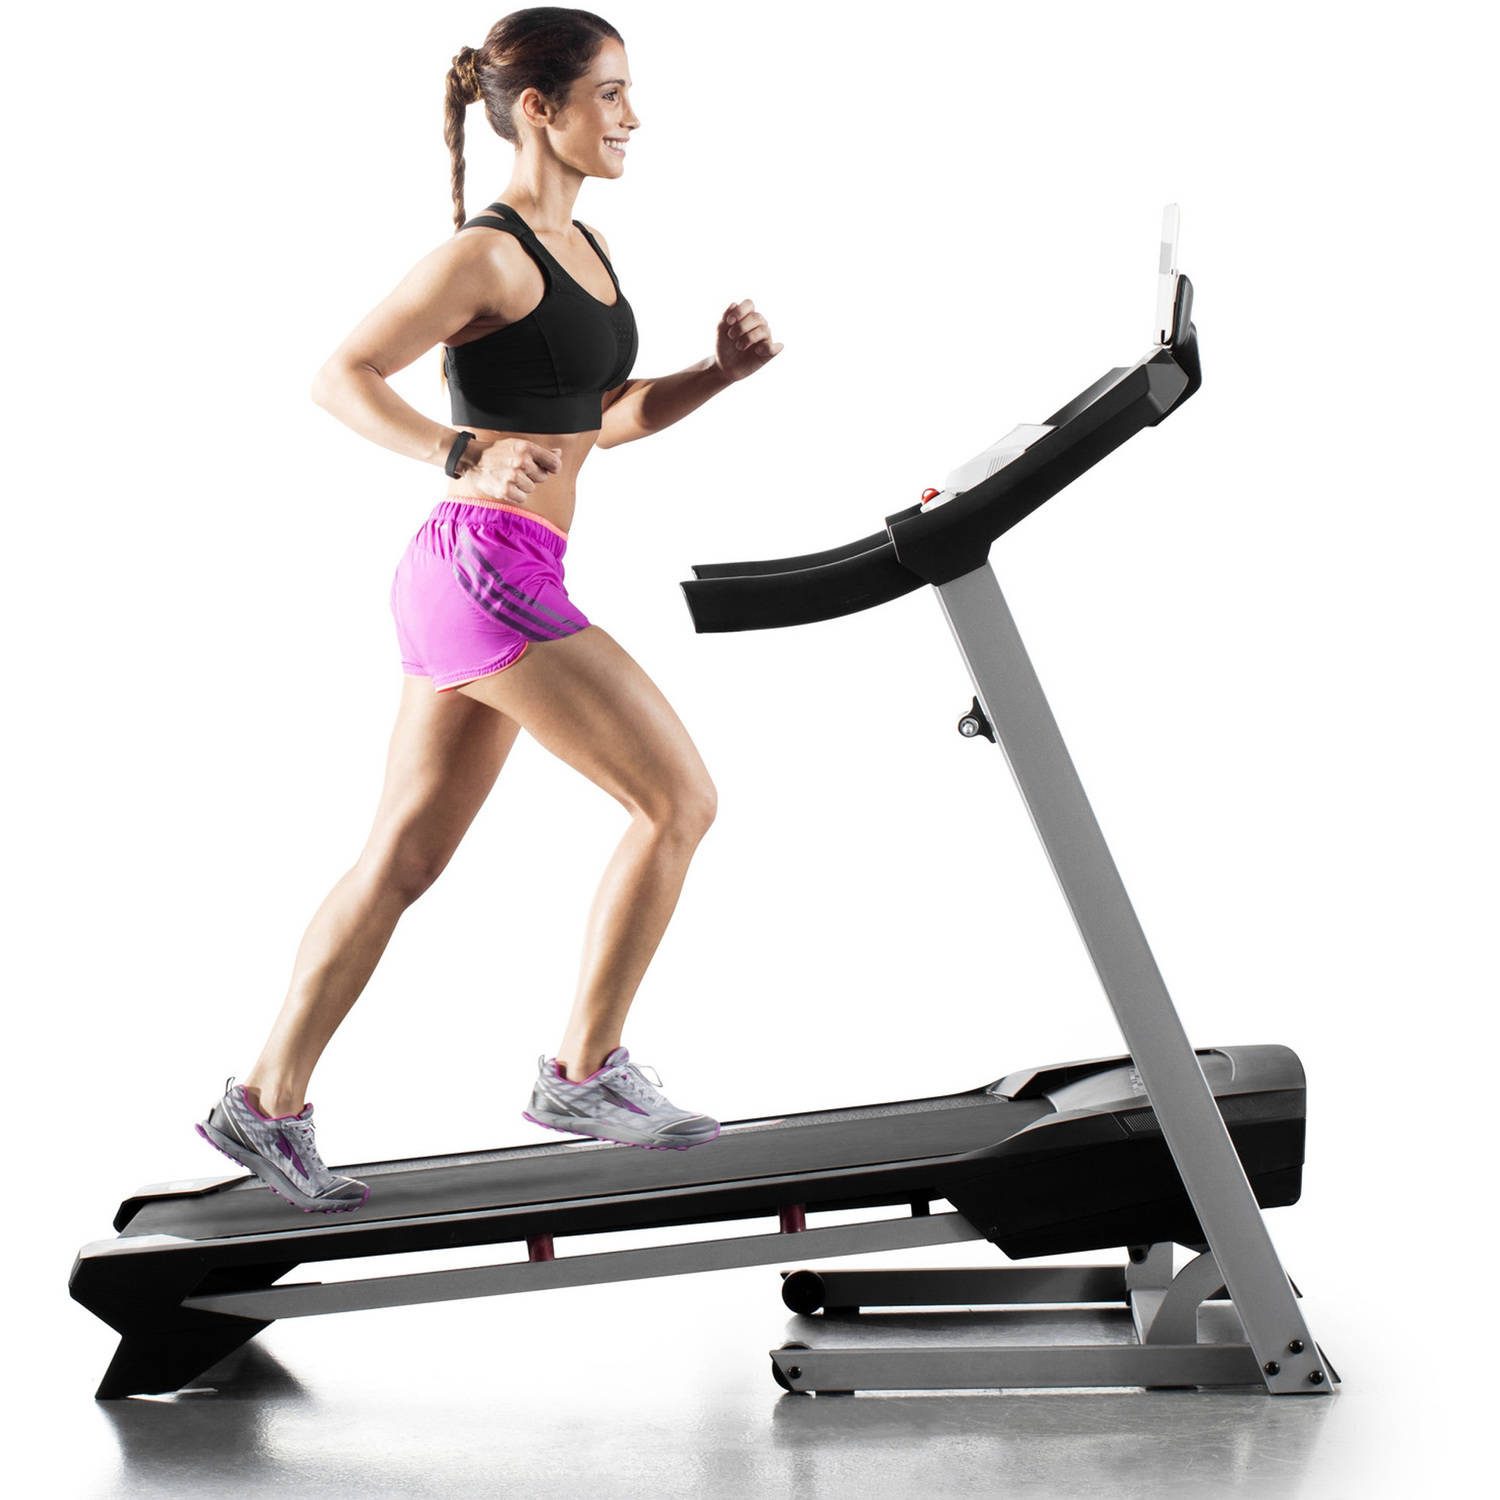 ProForm 305 CST Folding Treadmill with Power Incline and Cushioning